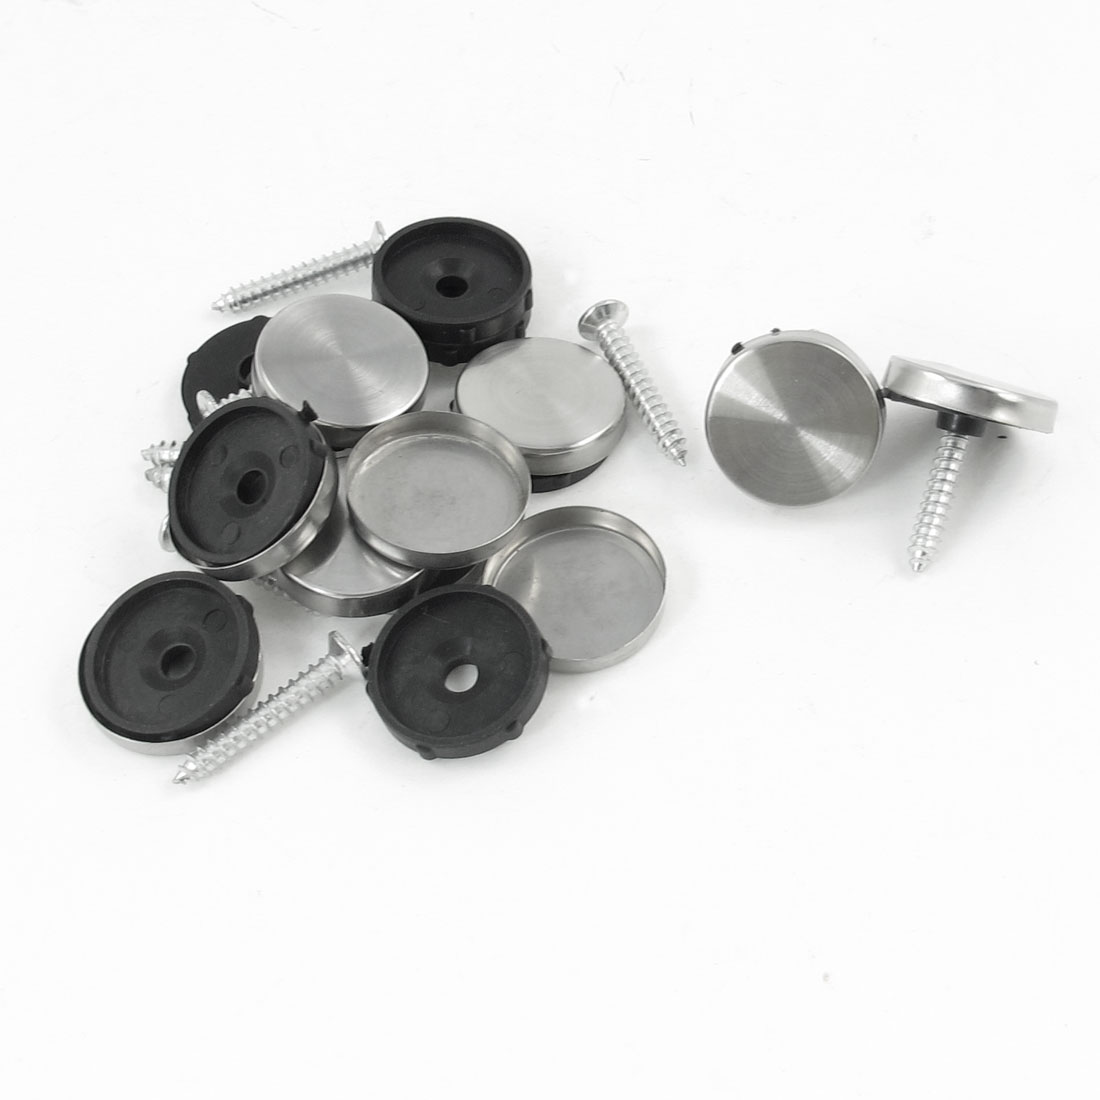 10 Pcs 20mm Dia Stainless Steel Mirror Nails Fittings Silver Tone Black